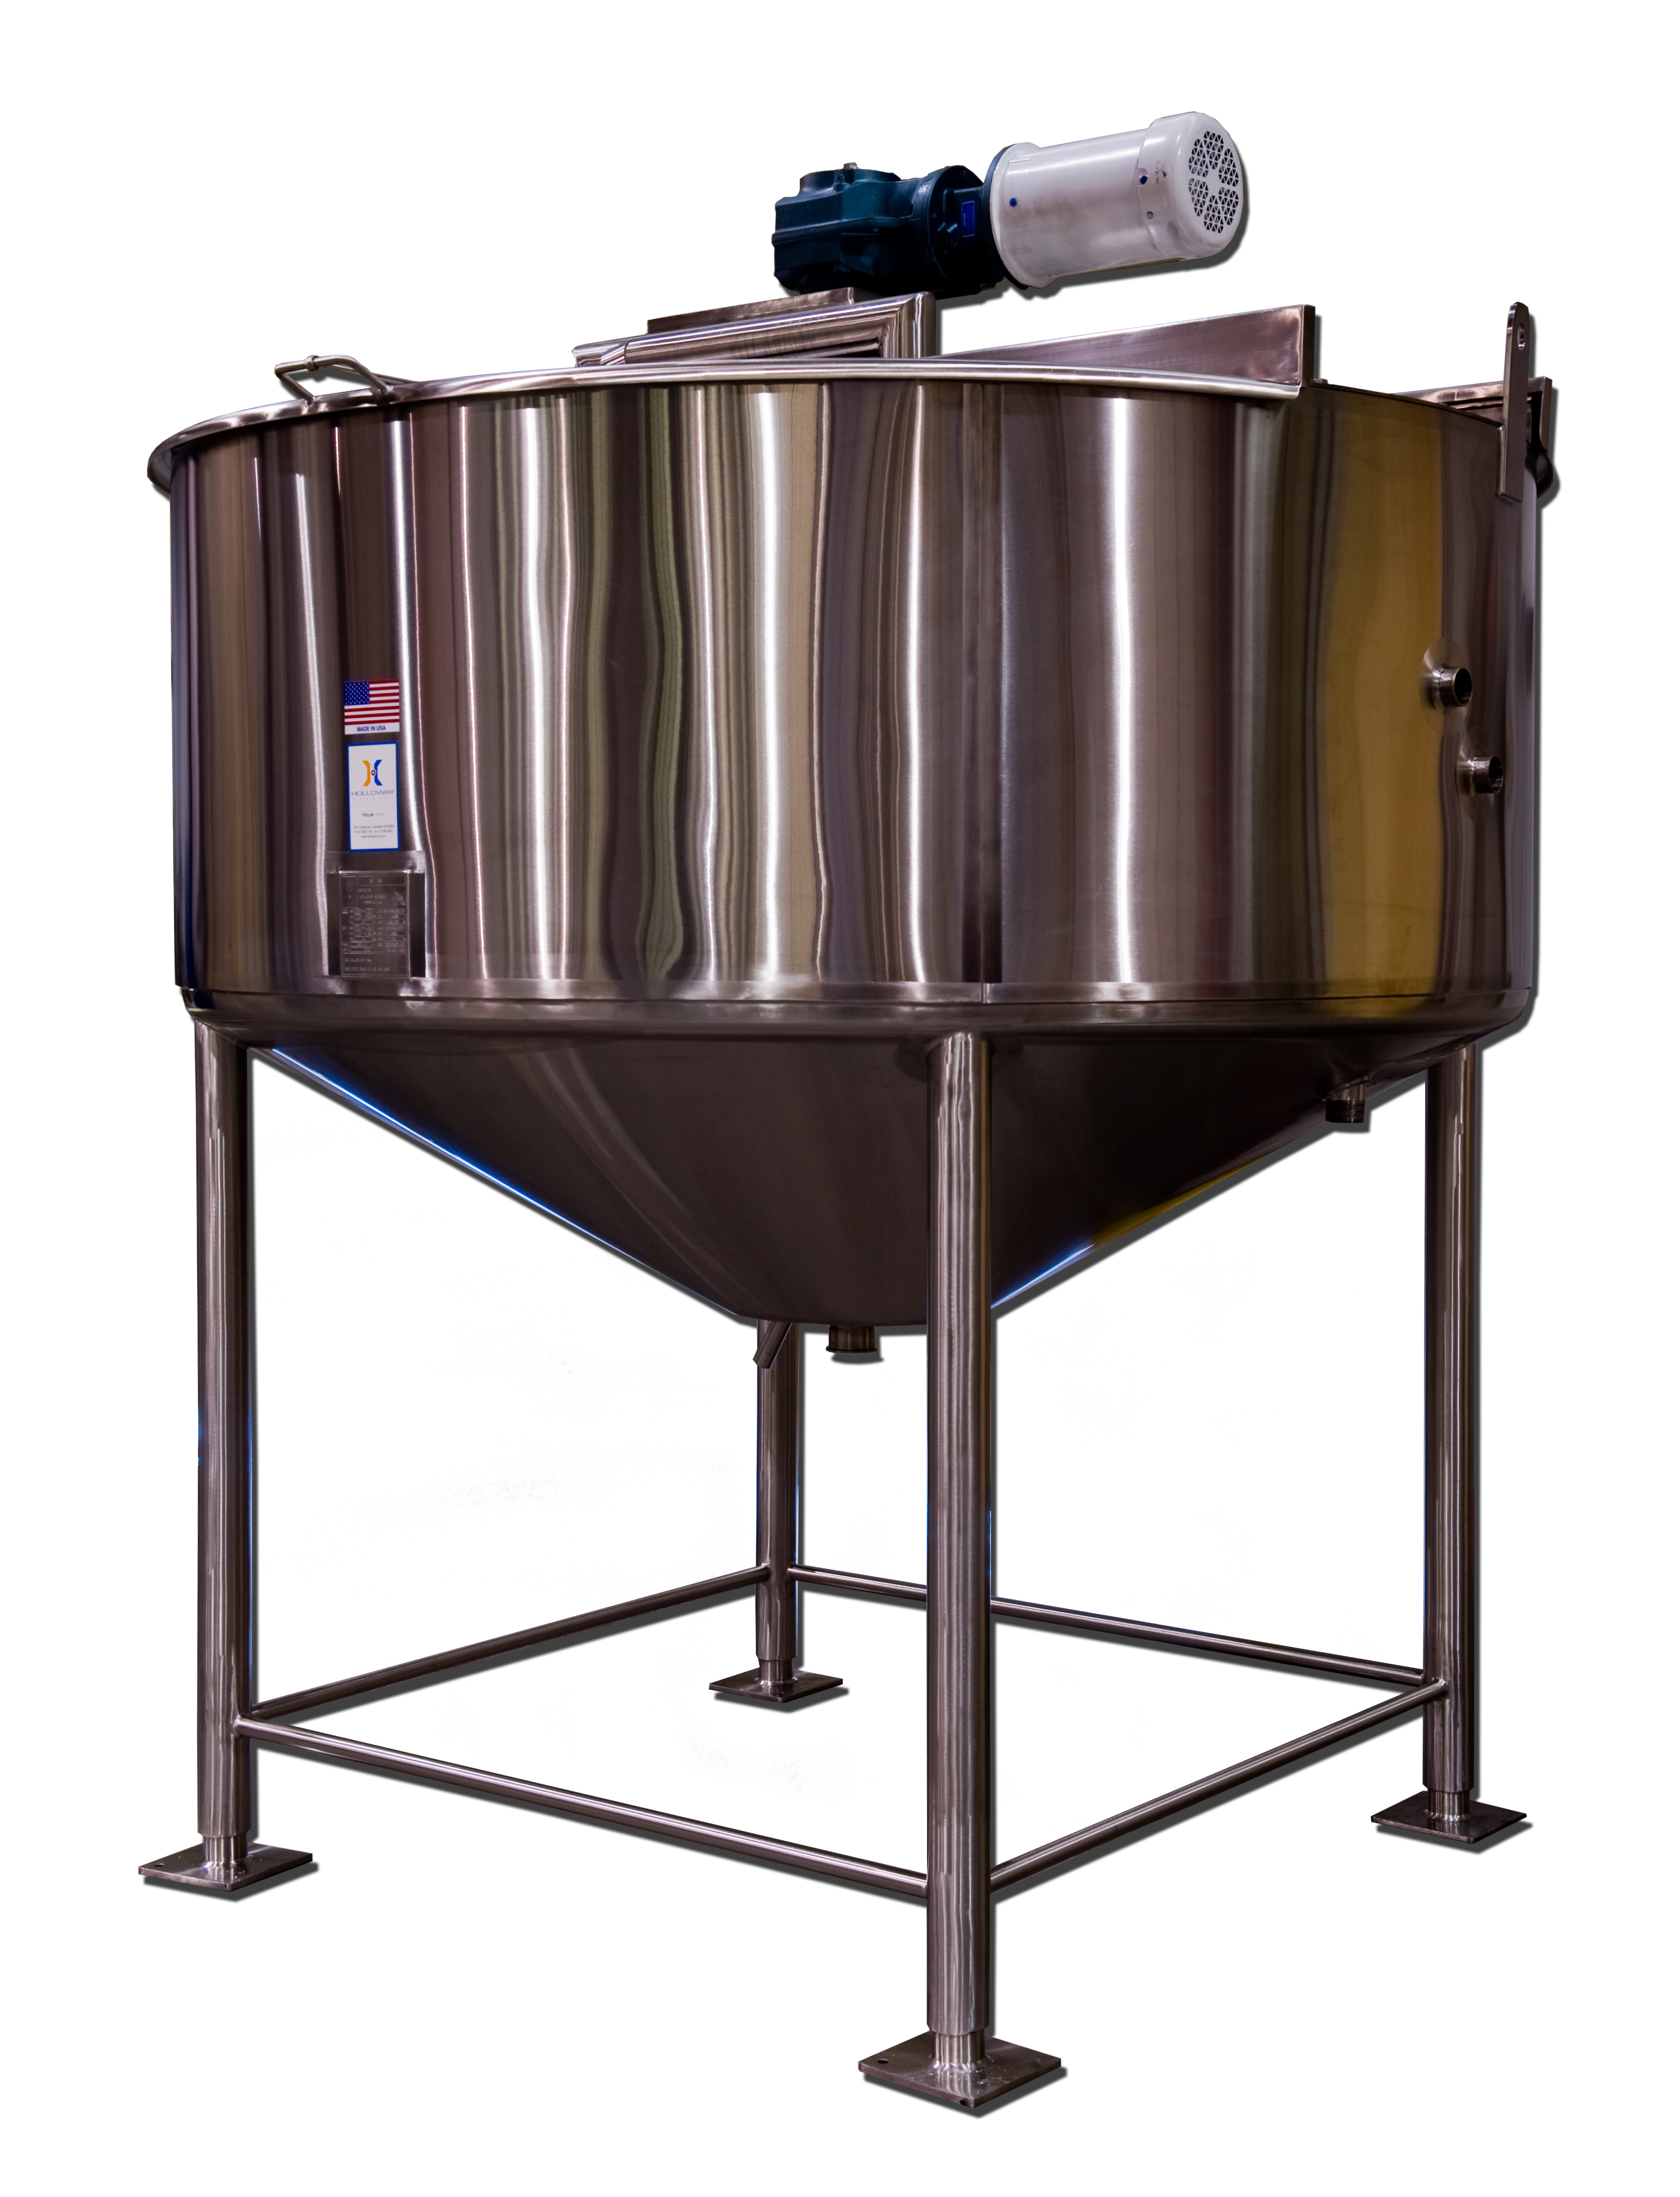 Pressure vessels from HOLLOWAY include this stainless steel tank for mixing.